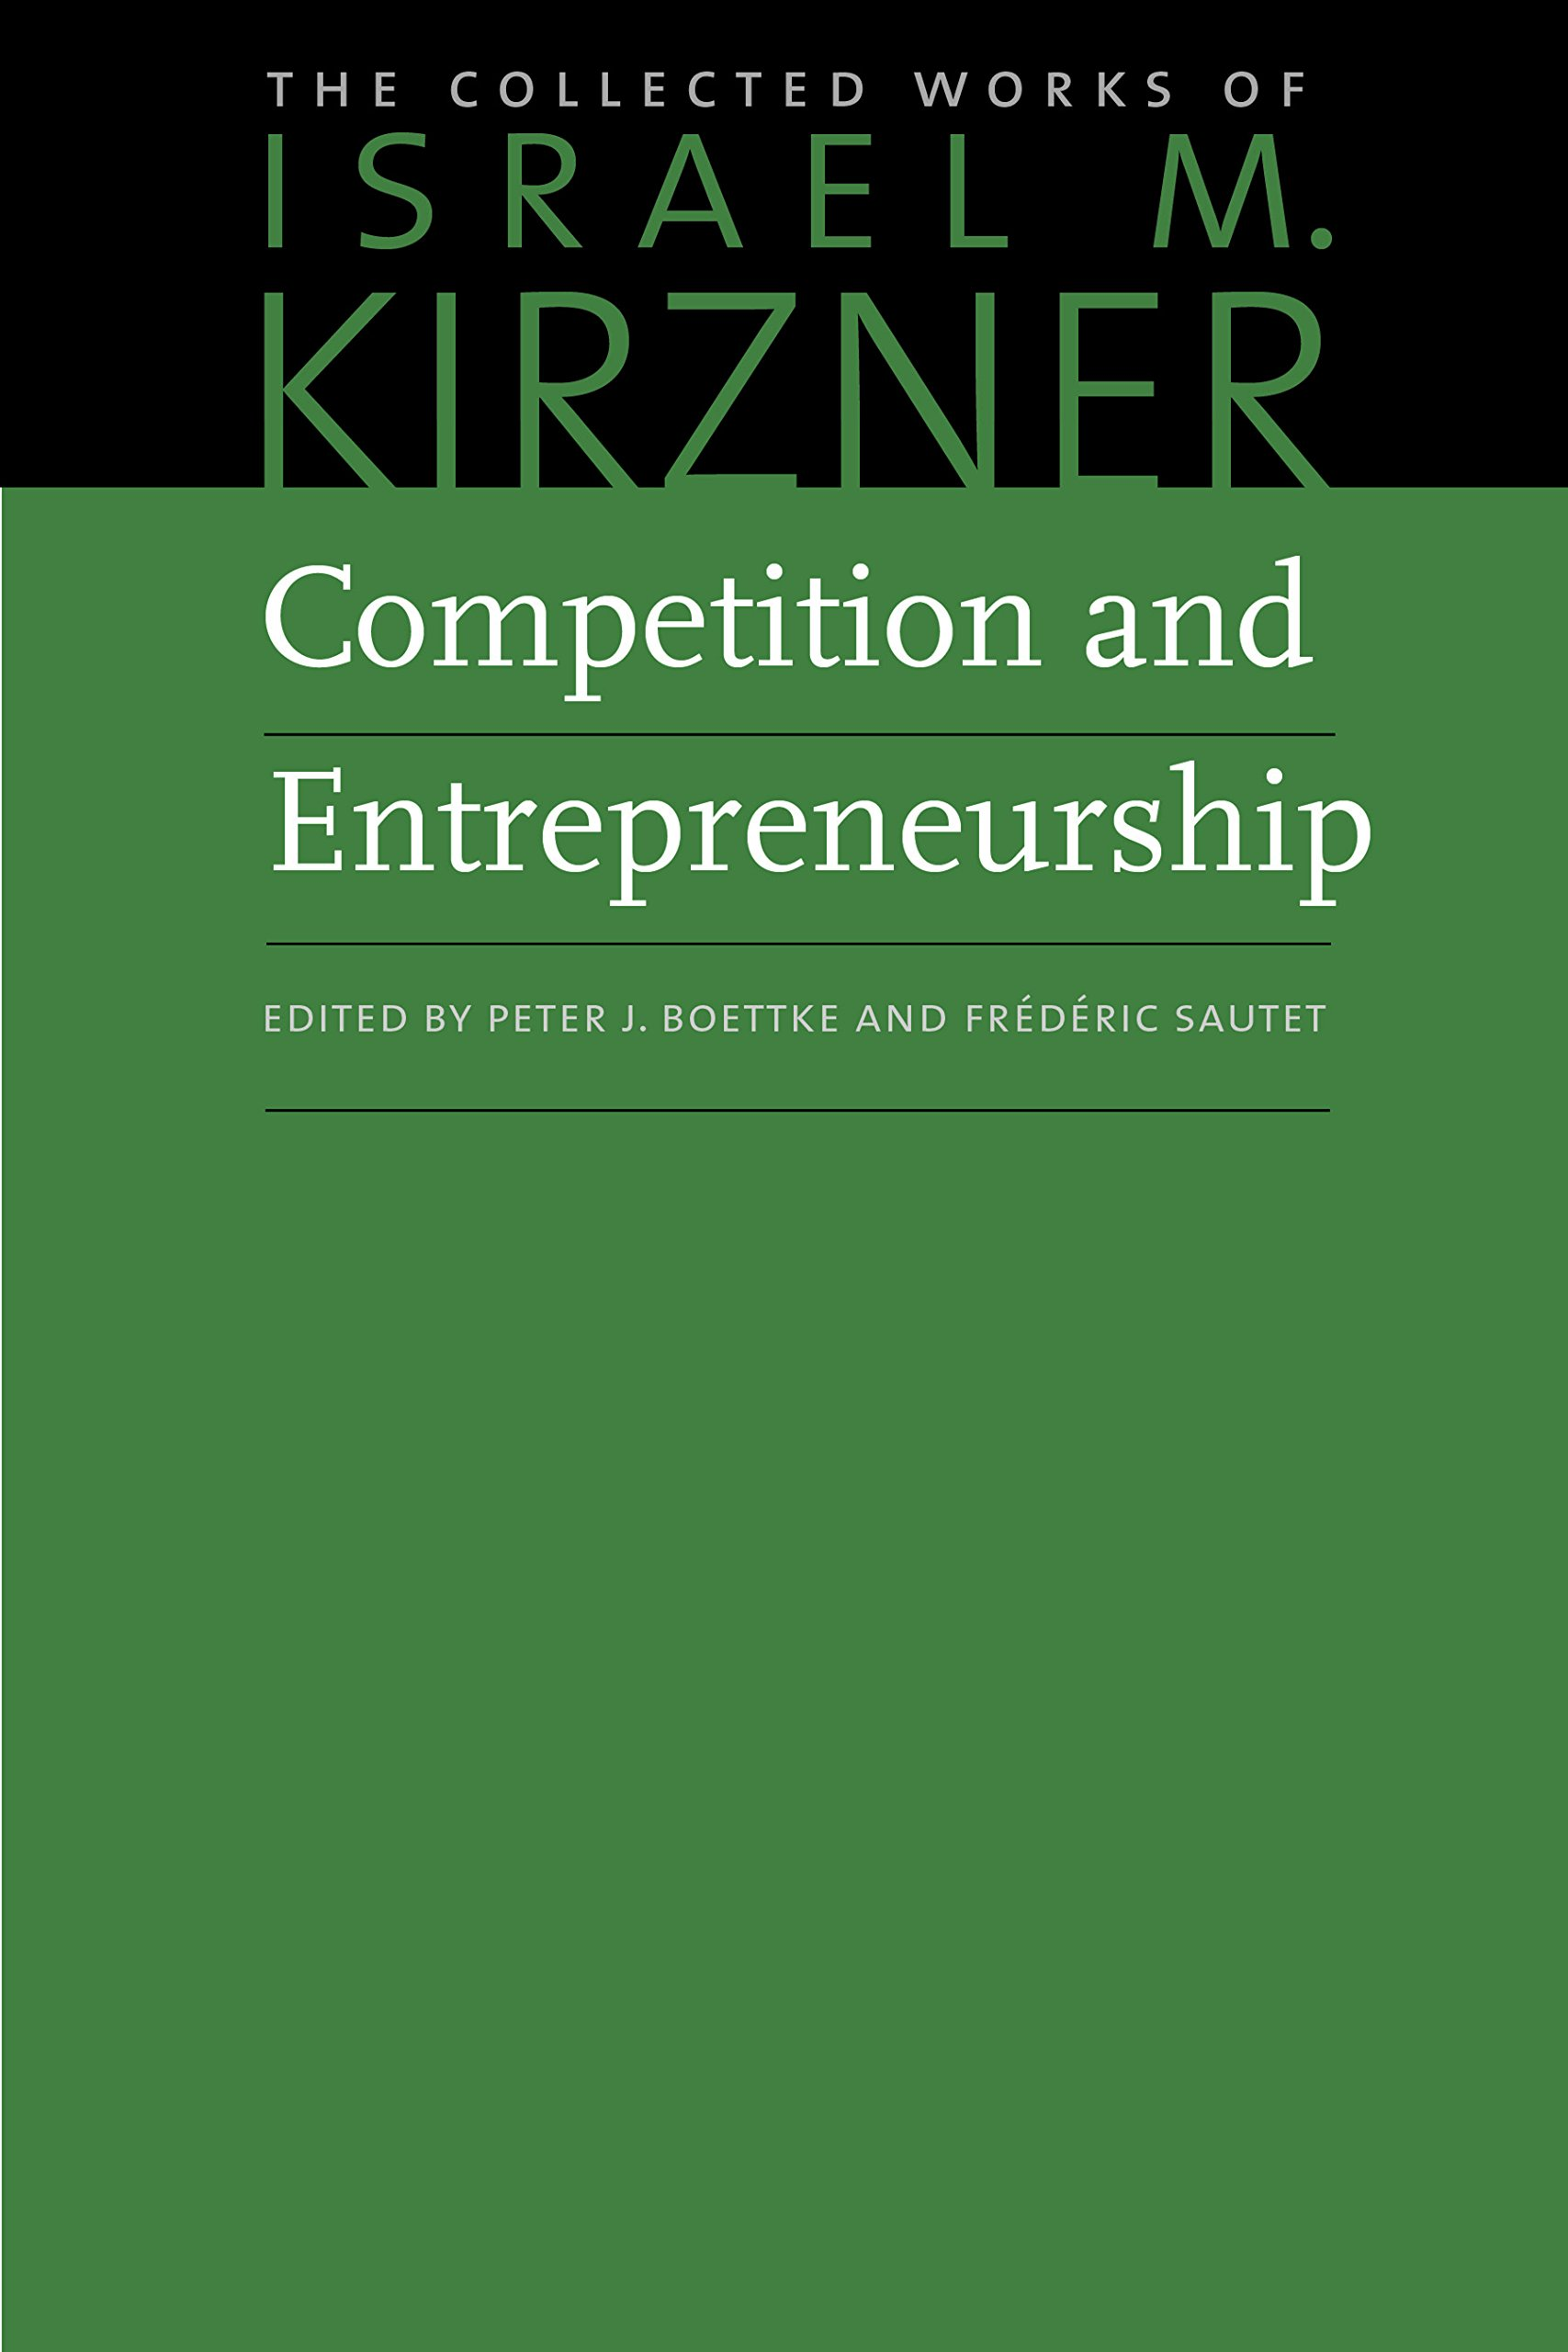 Competition and Entrepreneurship (The Collected Works of Israel M. Kirzner)